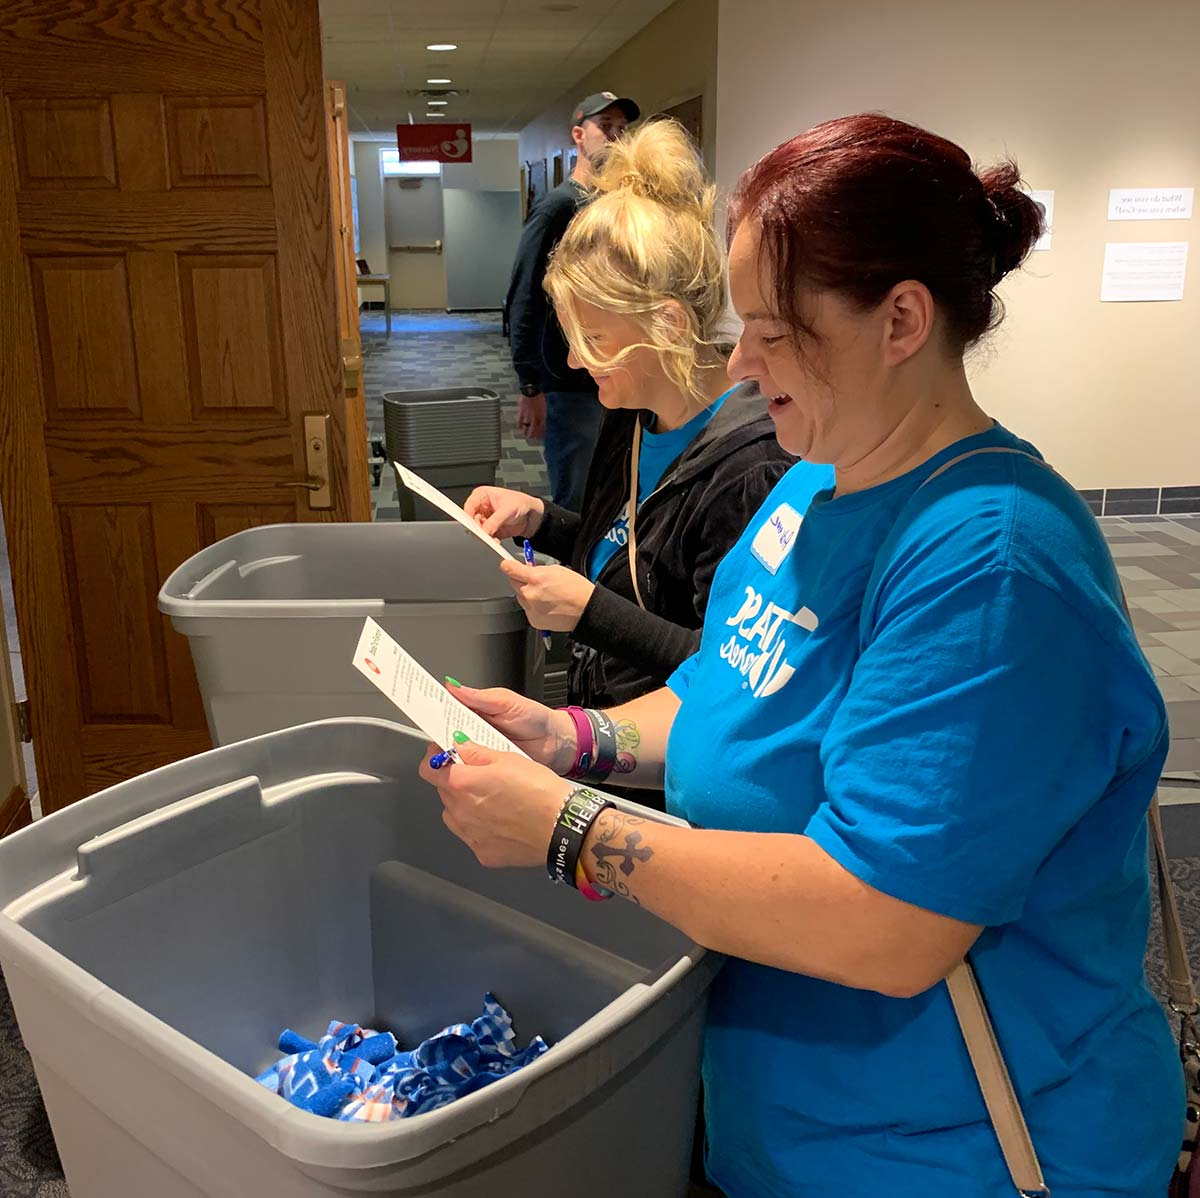 Volunteers pack kits at Home For Good in Minneapolis